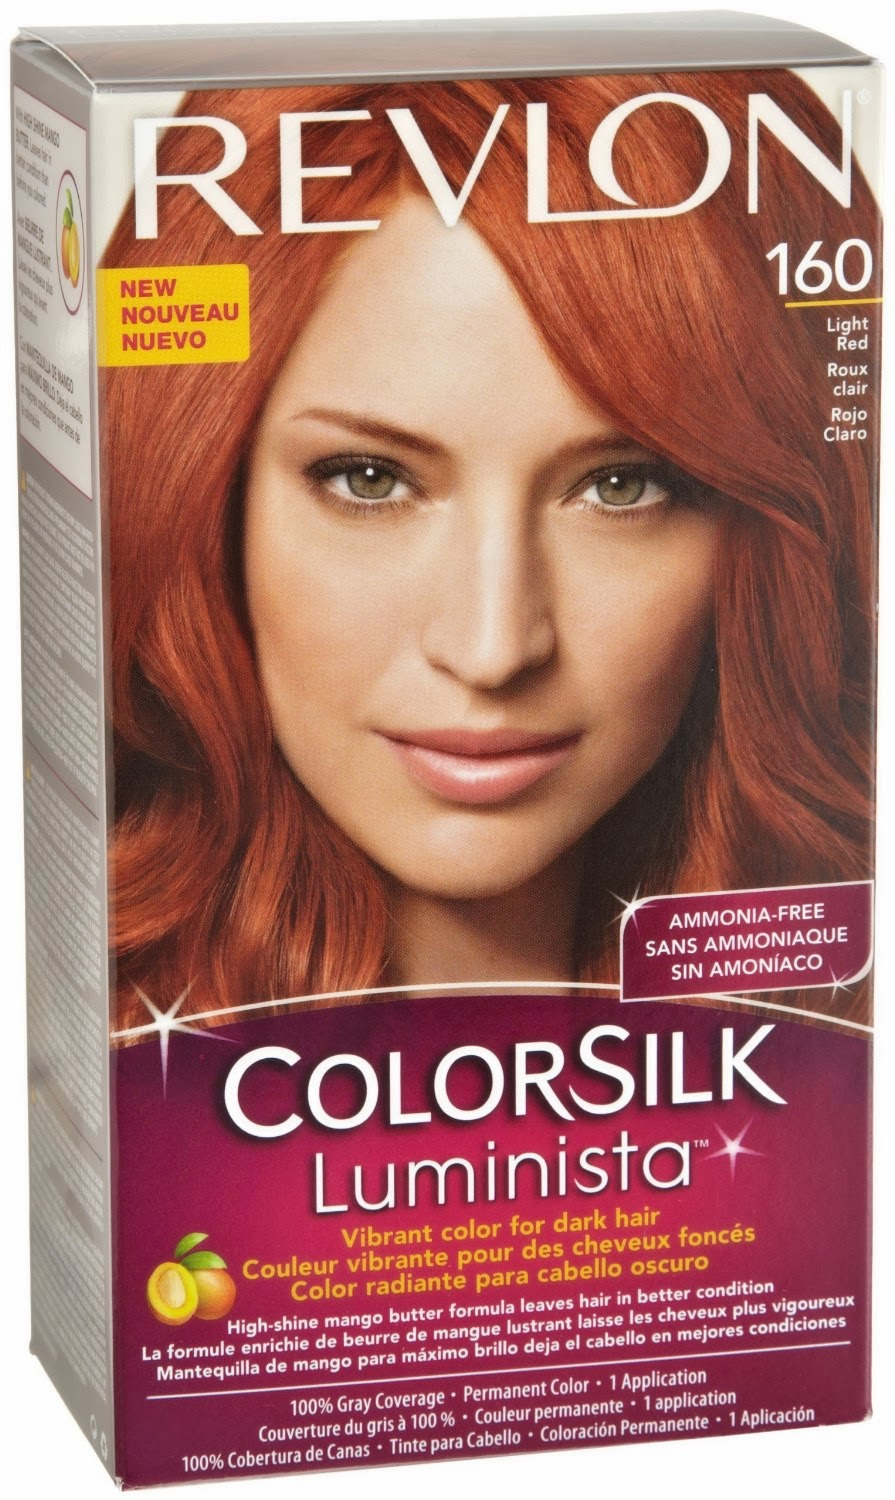 http://www.revlon.com/Revlon-Home/Products/Haircolor/ColorSilk/Colorsilk-Luminista.aspx